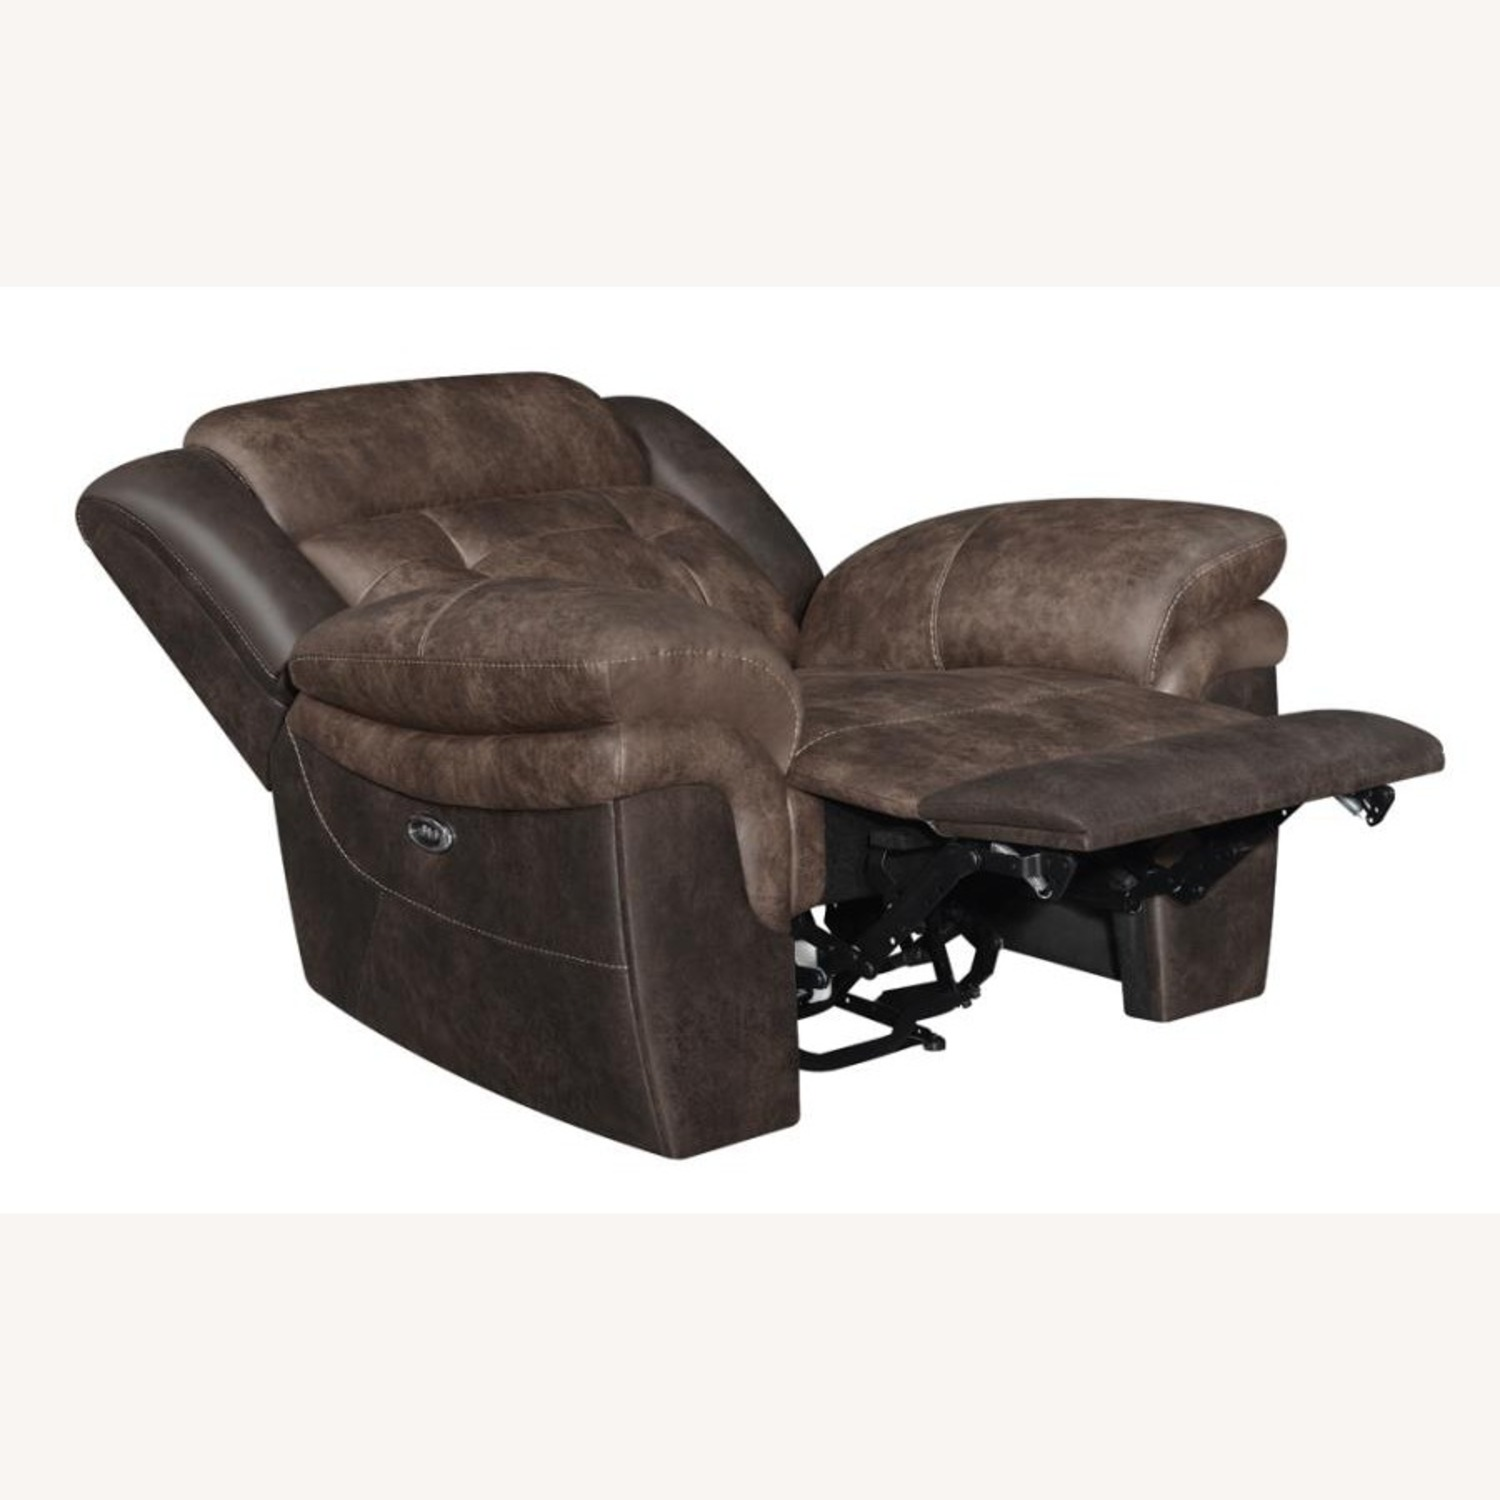 Power Recliner W/ Power Outlet In Chocolate Finish - image-1